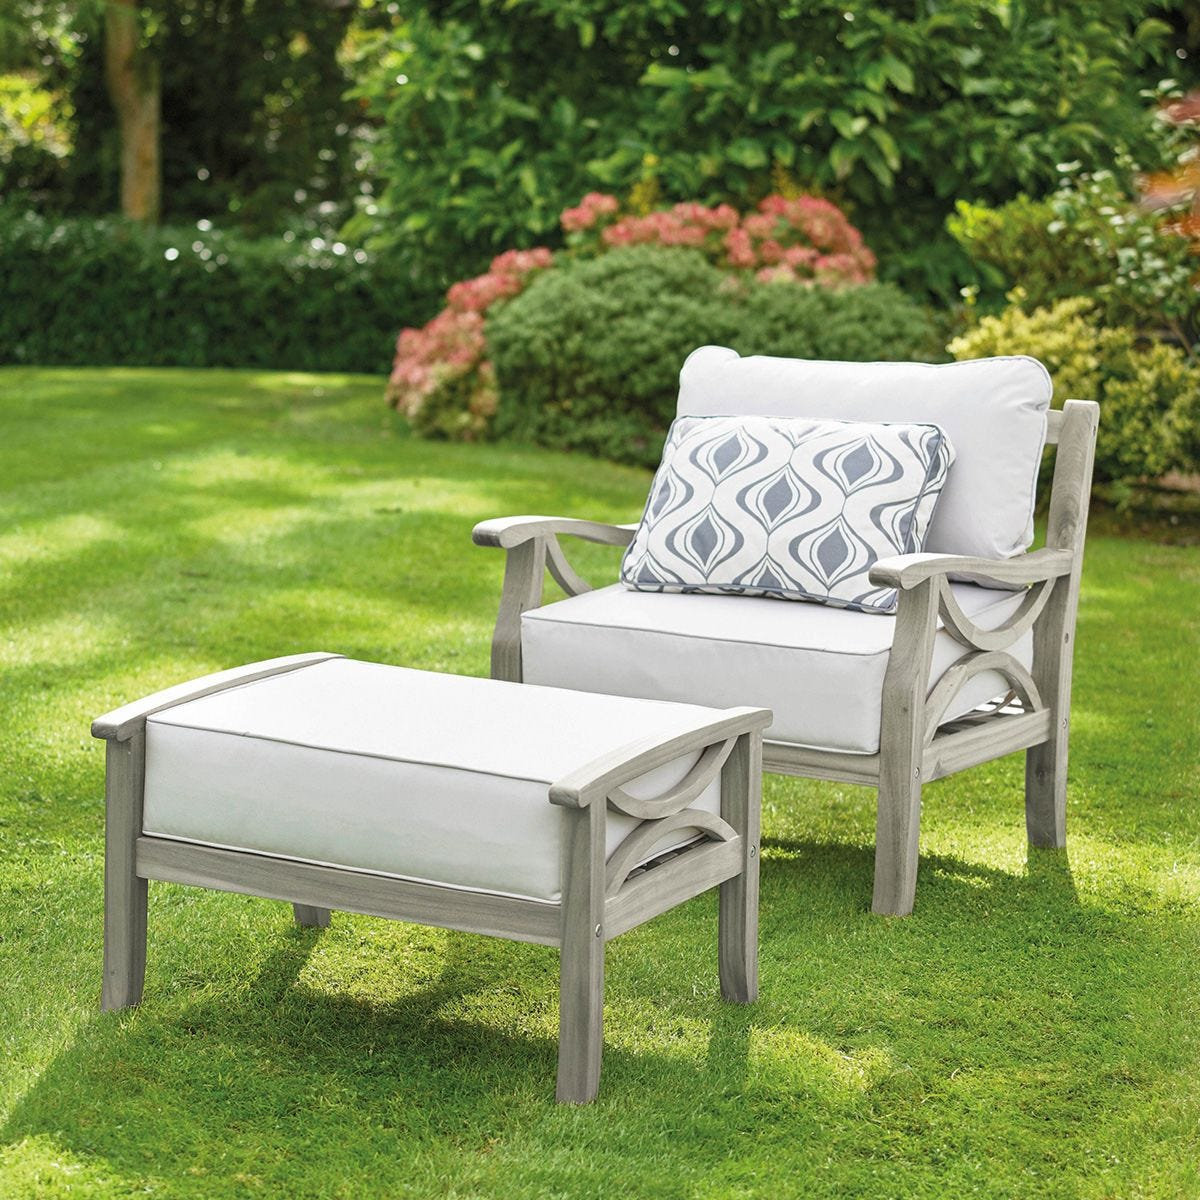 Greenhurst Hardwood Sorrento Armchair with Footrest and Cushions - Grey